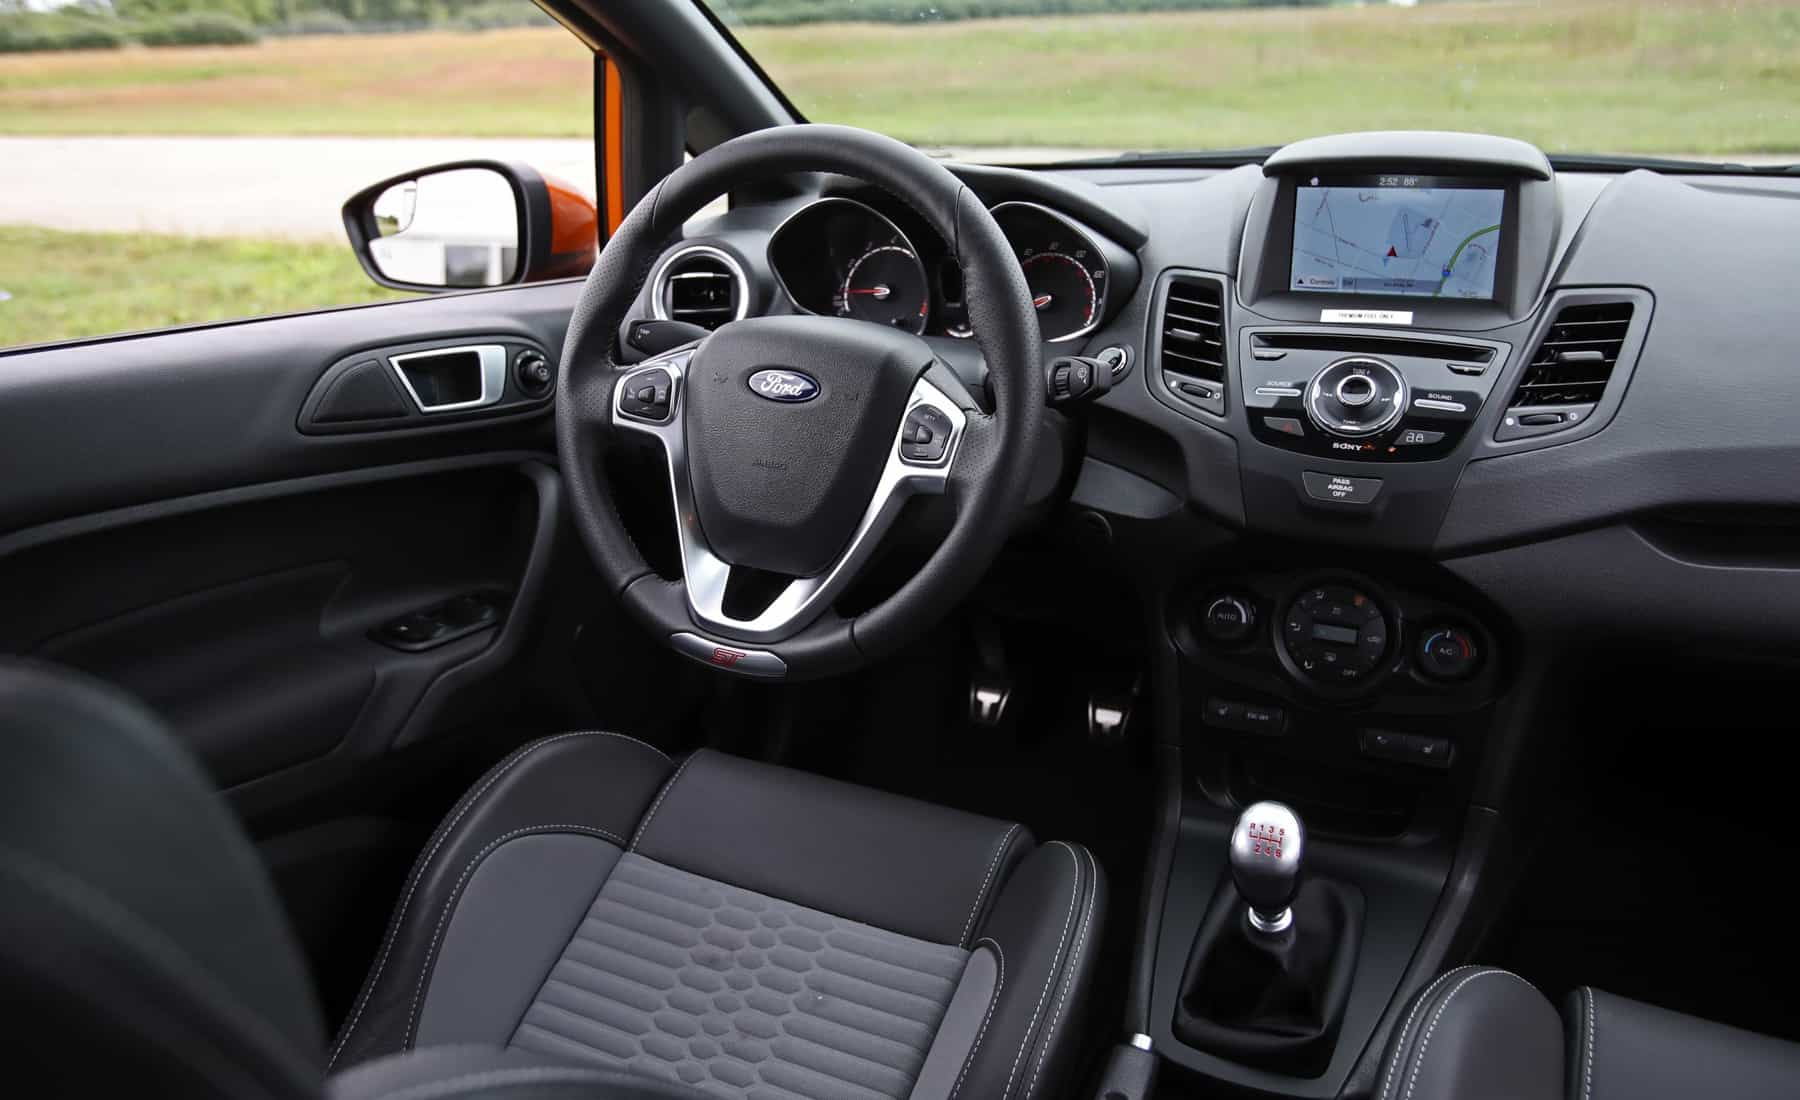 2017 Ford Fiesta ST Interior Driver Cockpit (Photo 30 of 47)